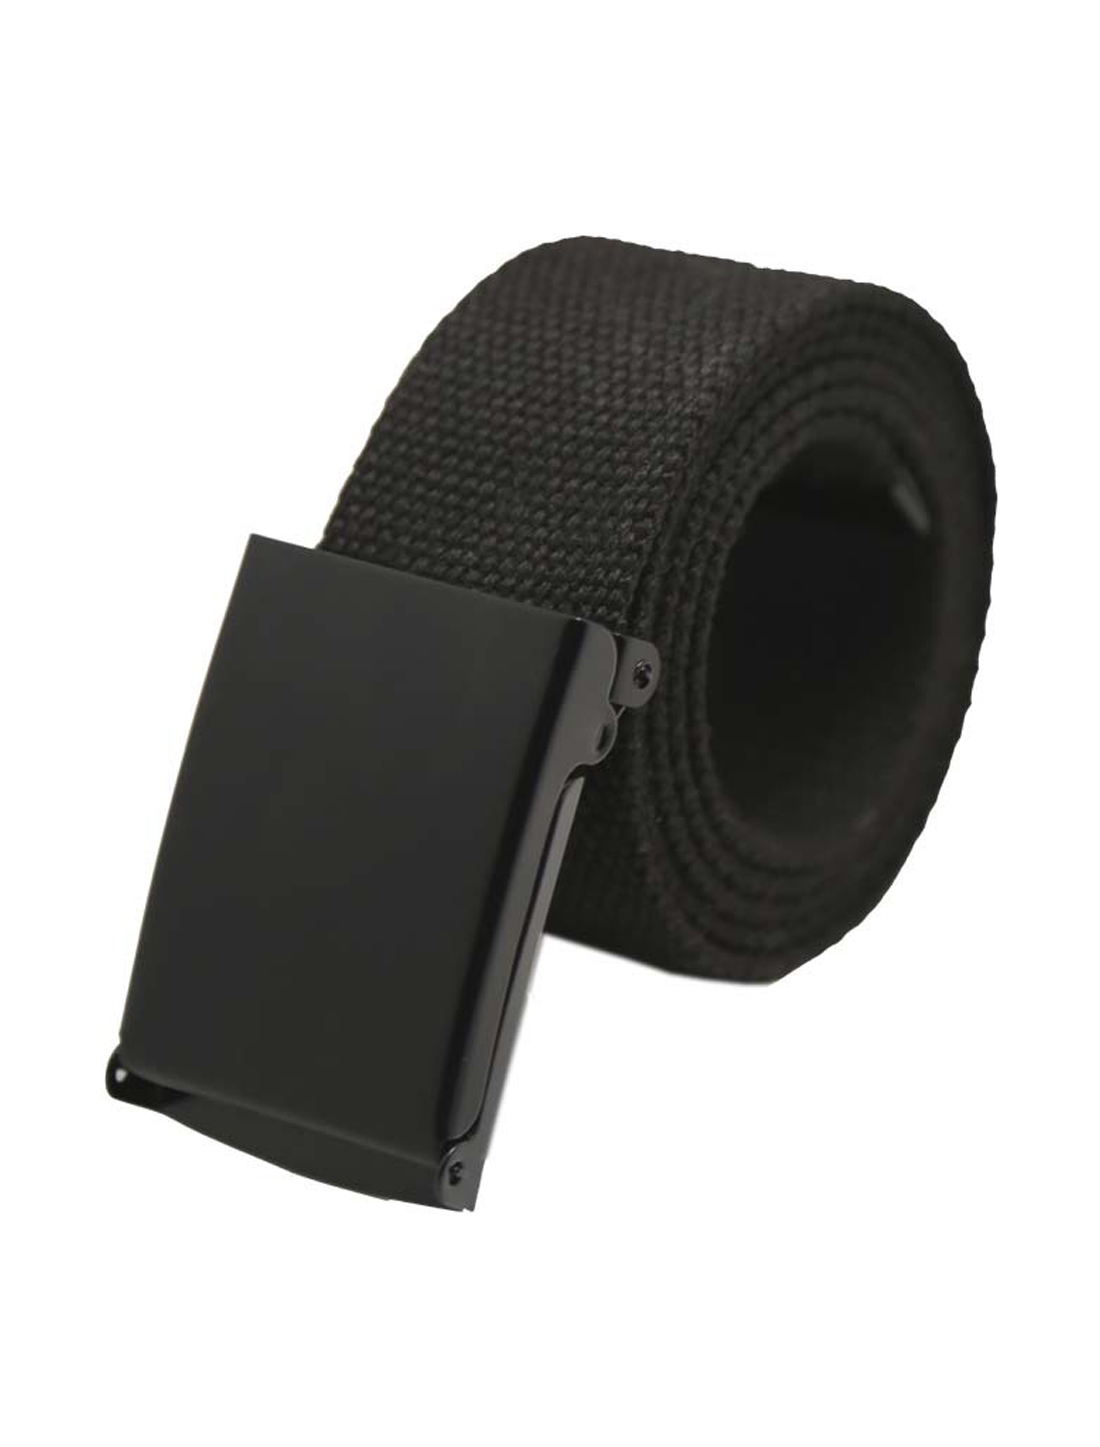 "Unisex Canvas No Holes Slide Buckle Adjustable Waist Belt Width 1 5/8"" Black"